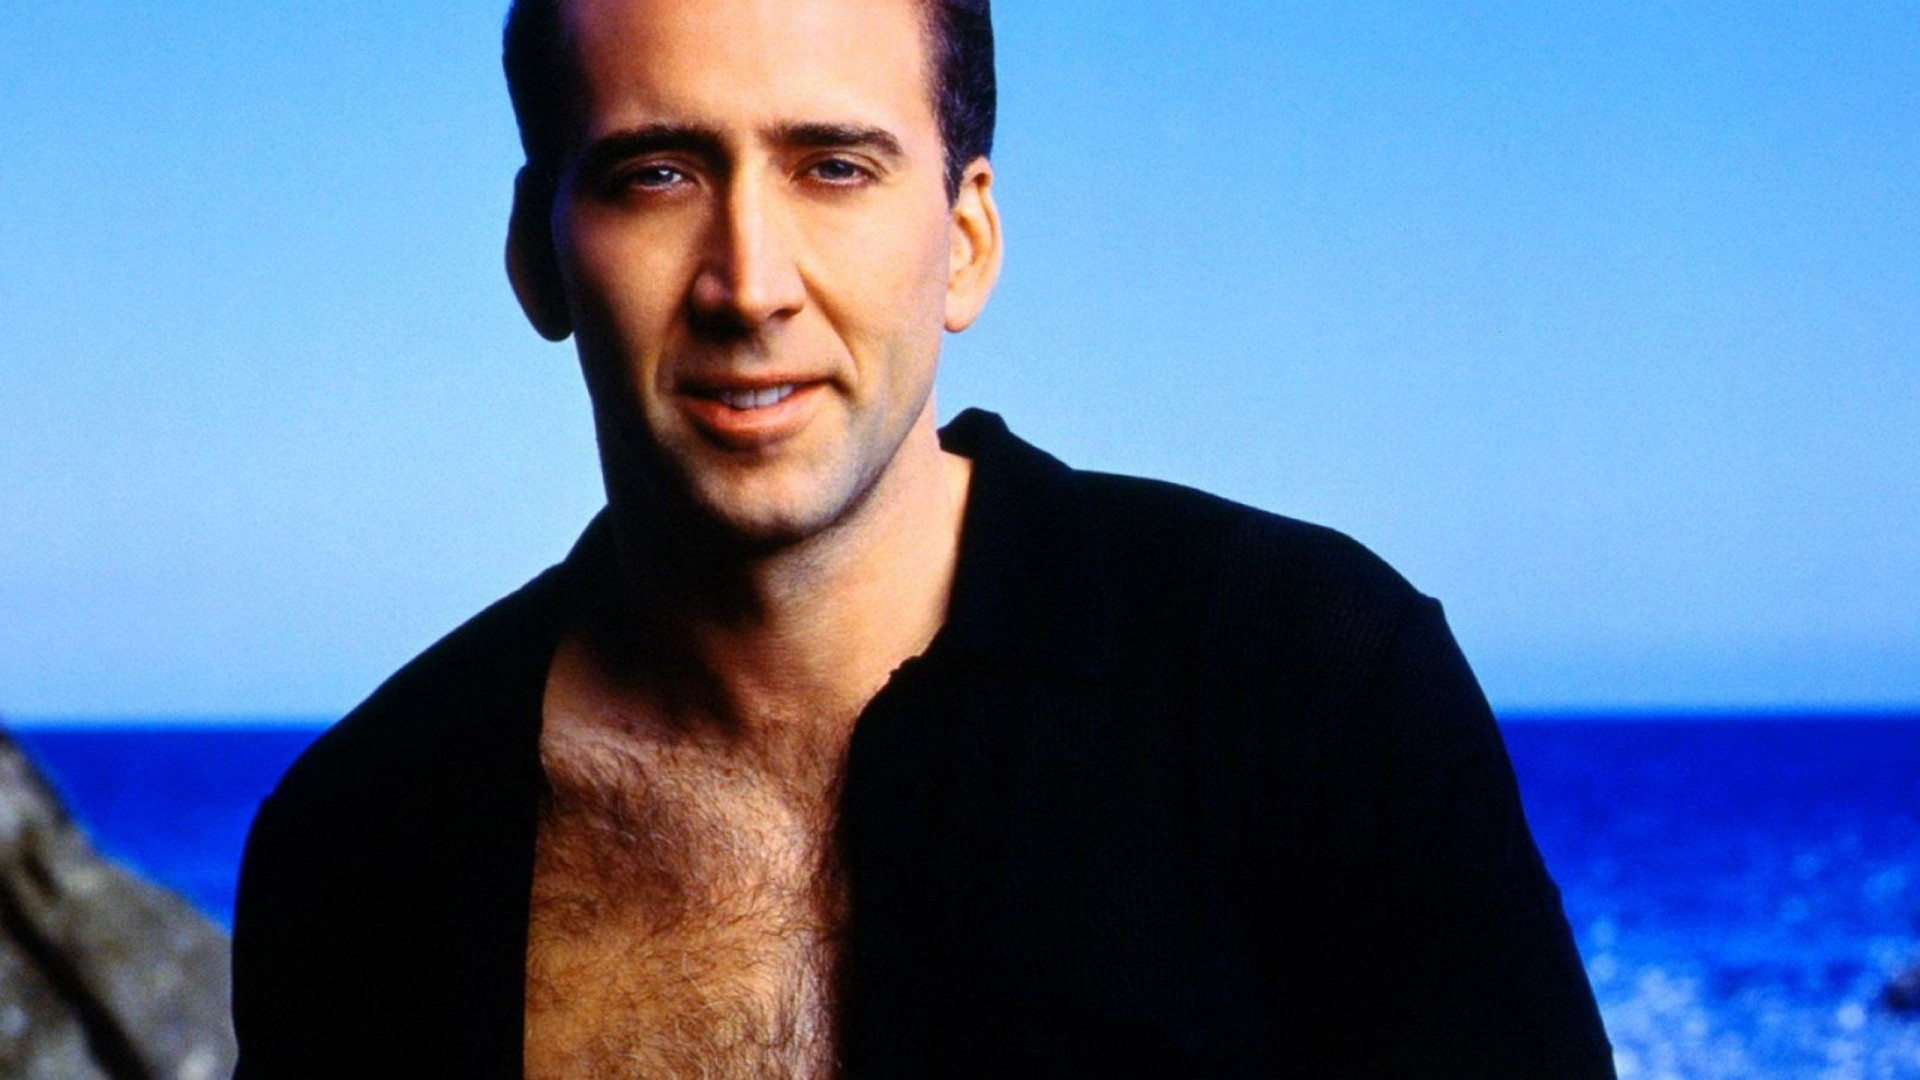 Nicolas Cage Wallpapers High Resolution and Quality Download